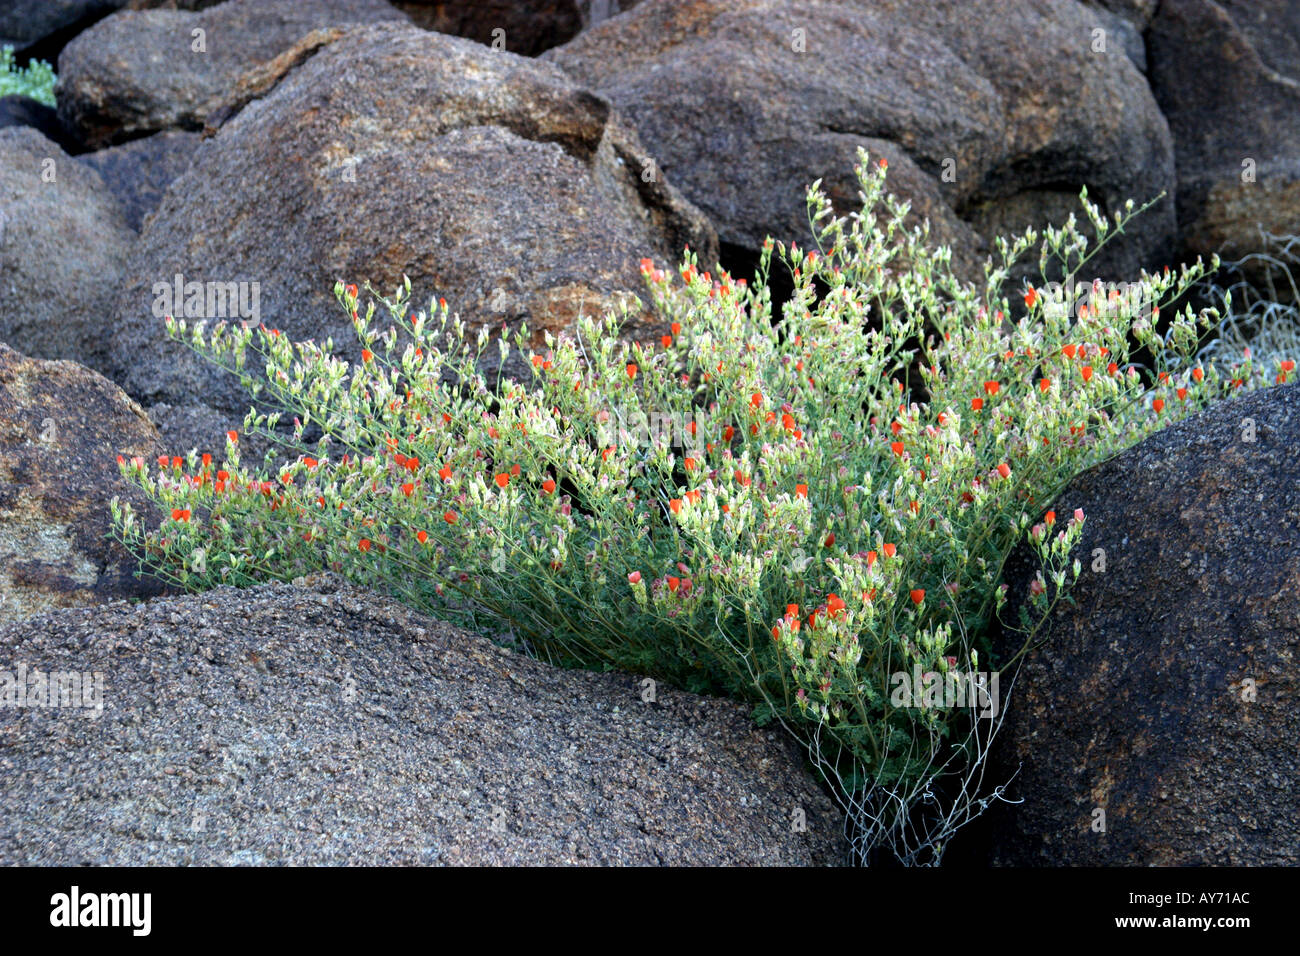 Apricot mallow Sphaeralcea ambigua and rocks at Joshua Tree National Park - Stock Image